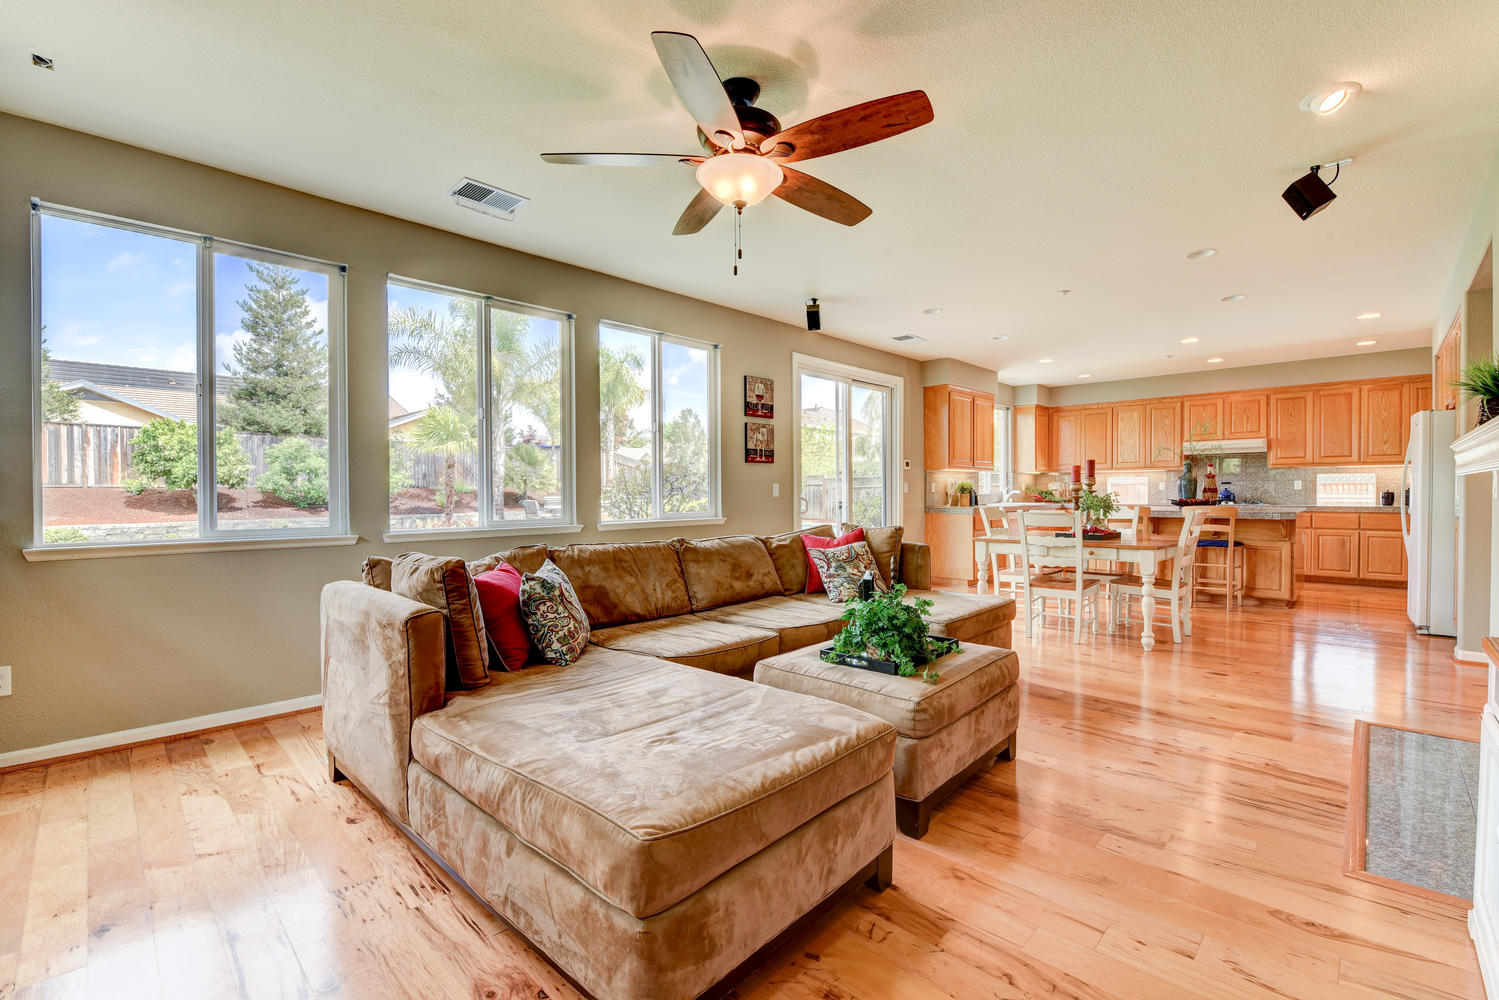 2896 Siena Rd Livermore CA-large-007-3-Family RoomKitchen-1499×1000-72dpi